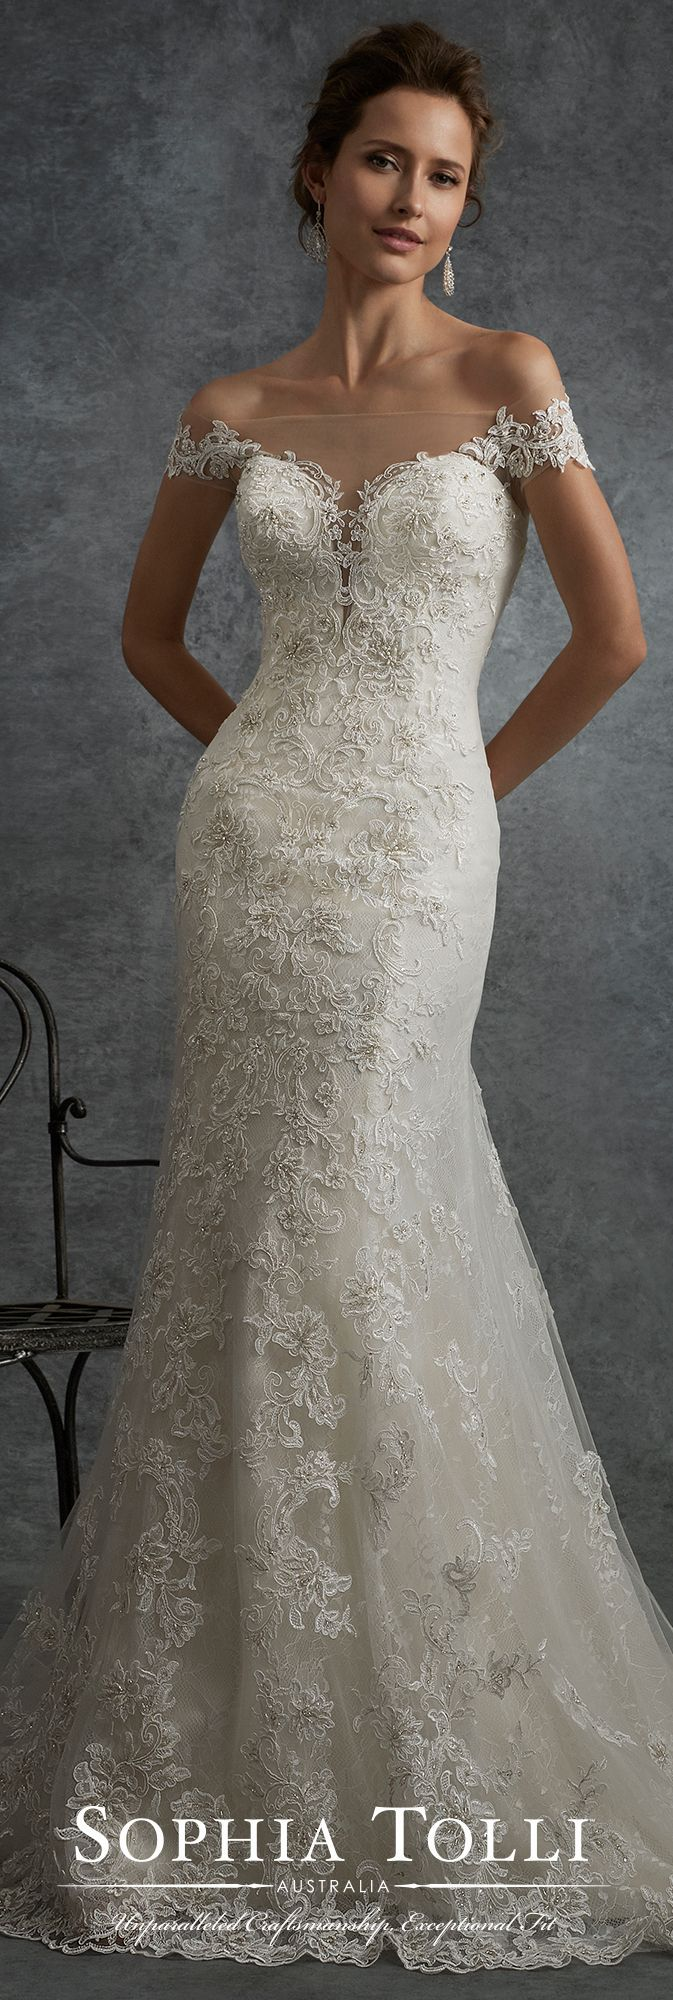 Sophia Tolli Fall 2017 Wedding Gown Collection - Style No. Y21752 Cassiopeia - off-the-shoulder tulle and lace fit and flare wedding dress with low illusion back adorned with lace